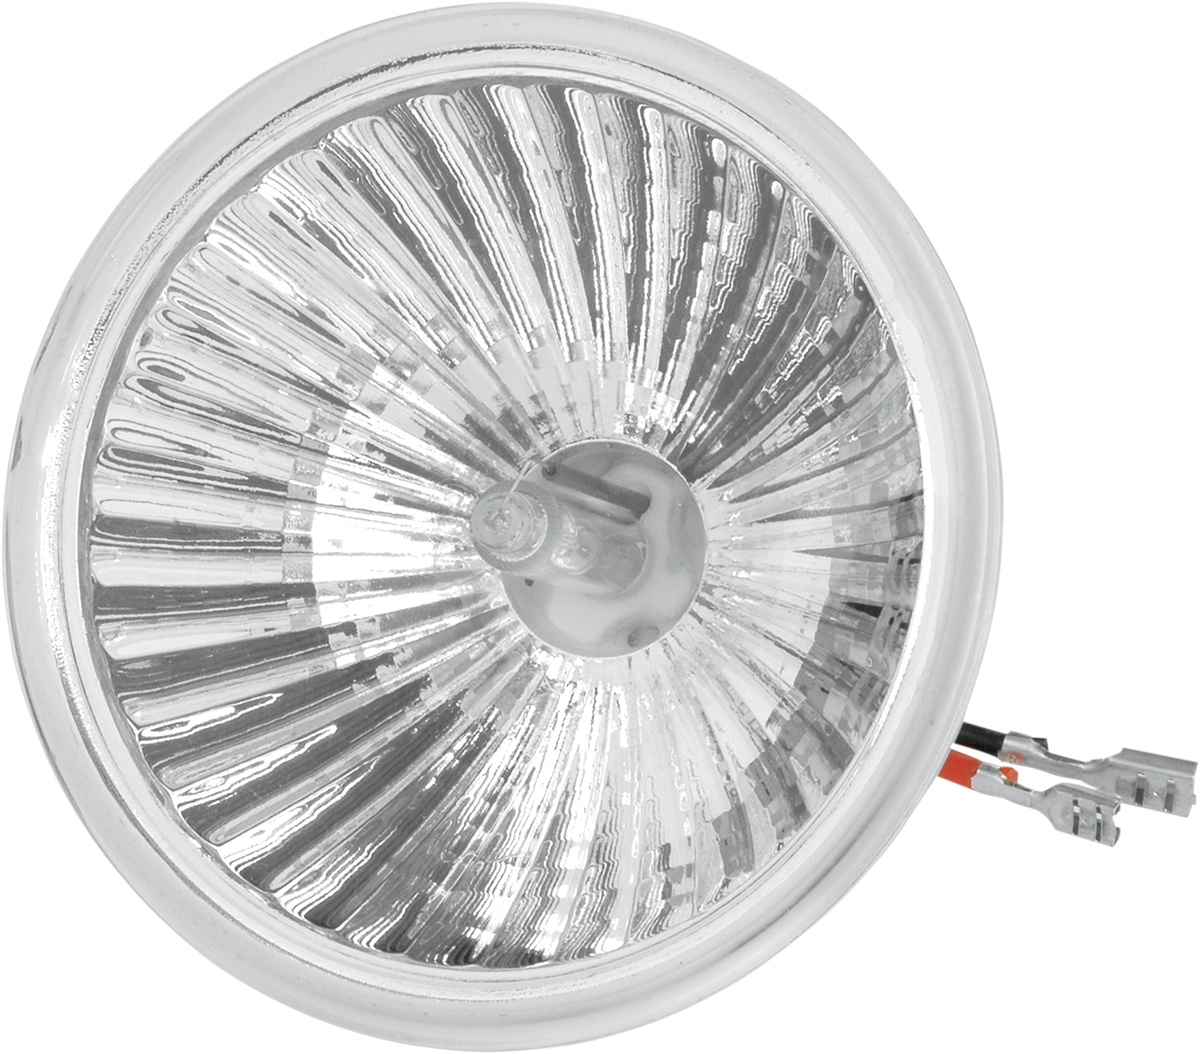 Replacement 4in. HID Lamp